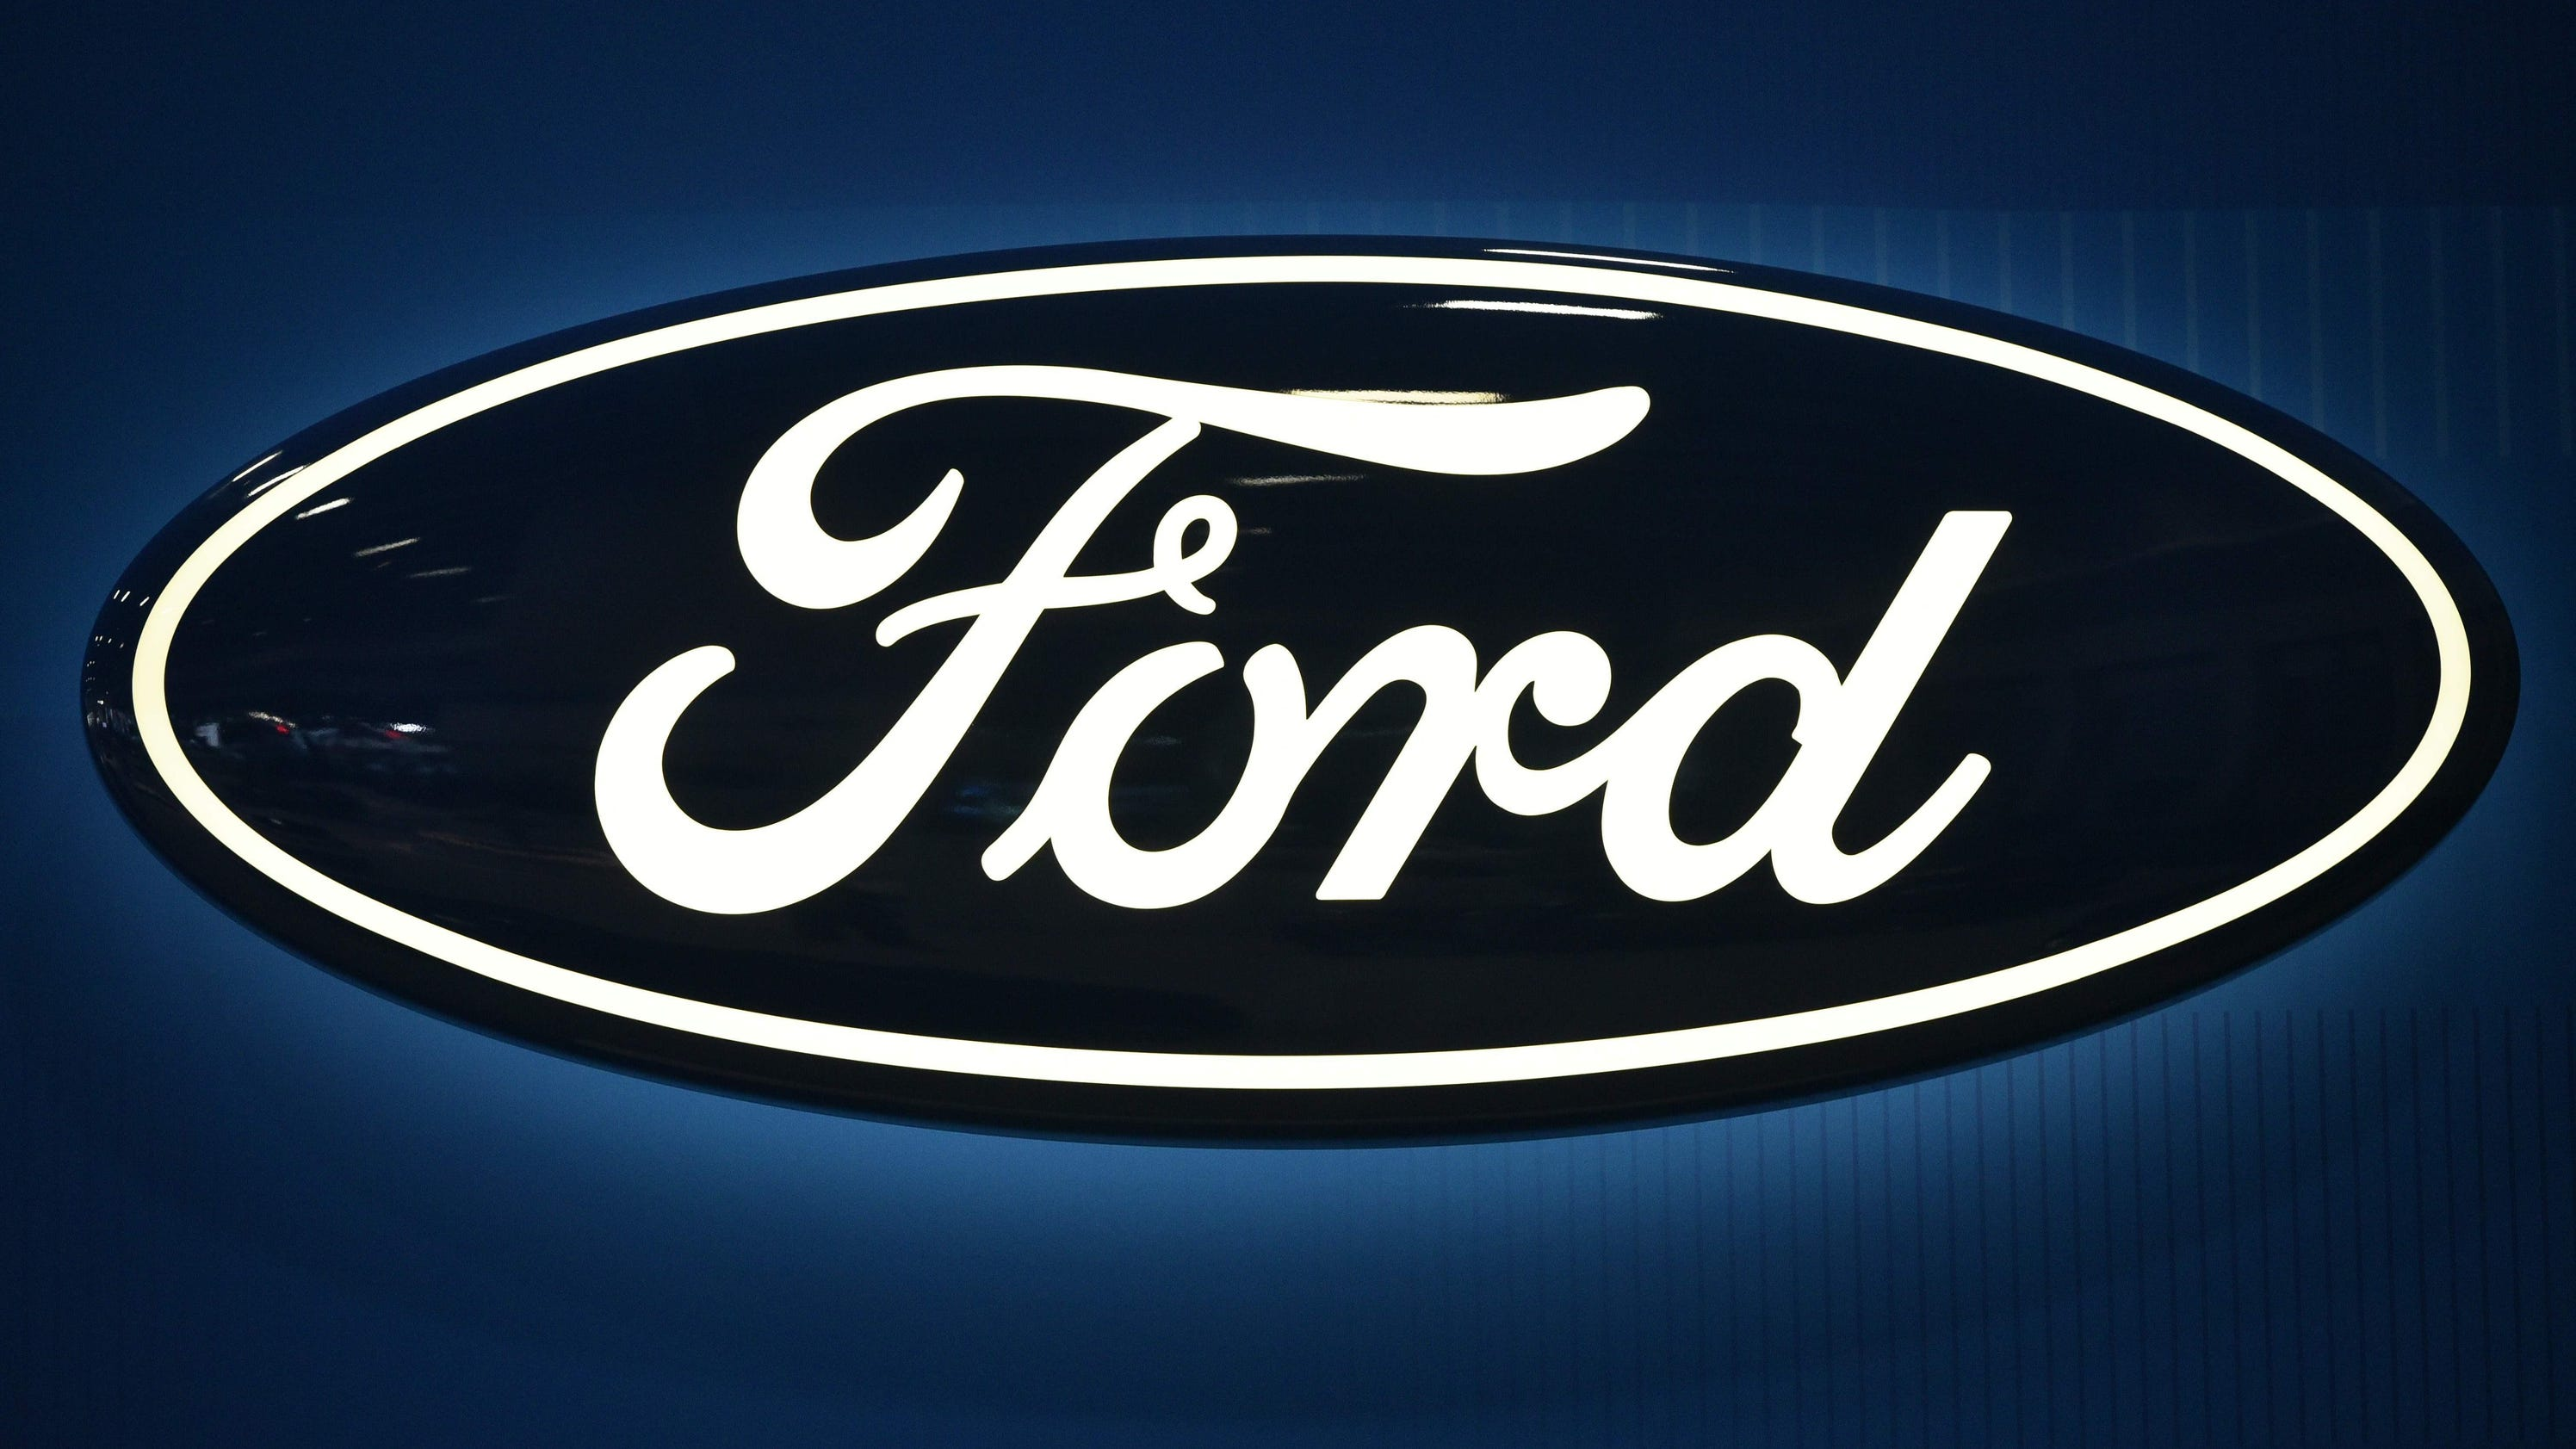 Production problem idles Ford F-150 plant in Kansas